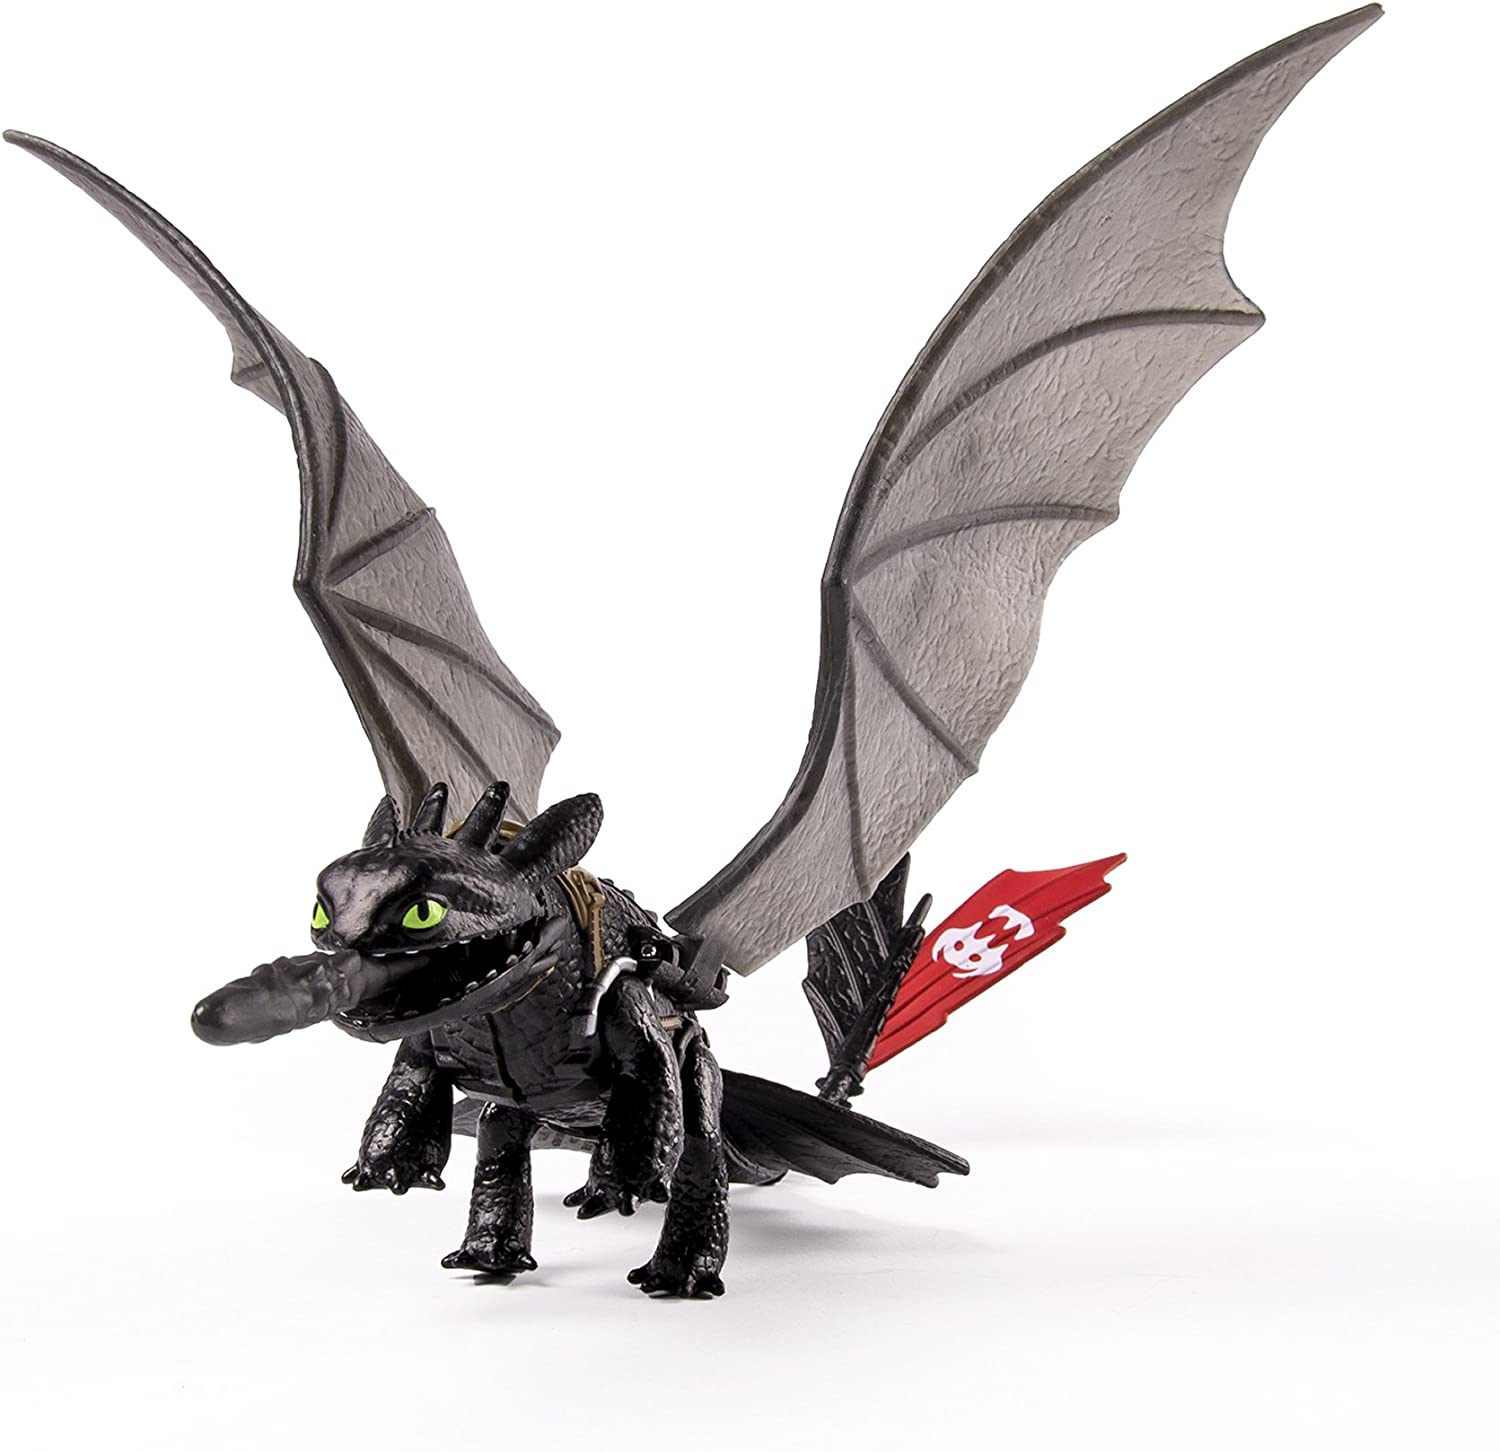 Amazon Com Dreamworks Dragons How To Train Your Dragon 2 Toothless Power Dragon Power Glow Toys Games